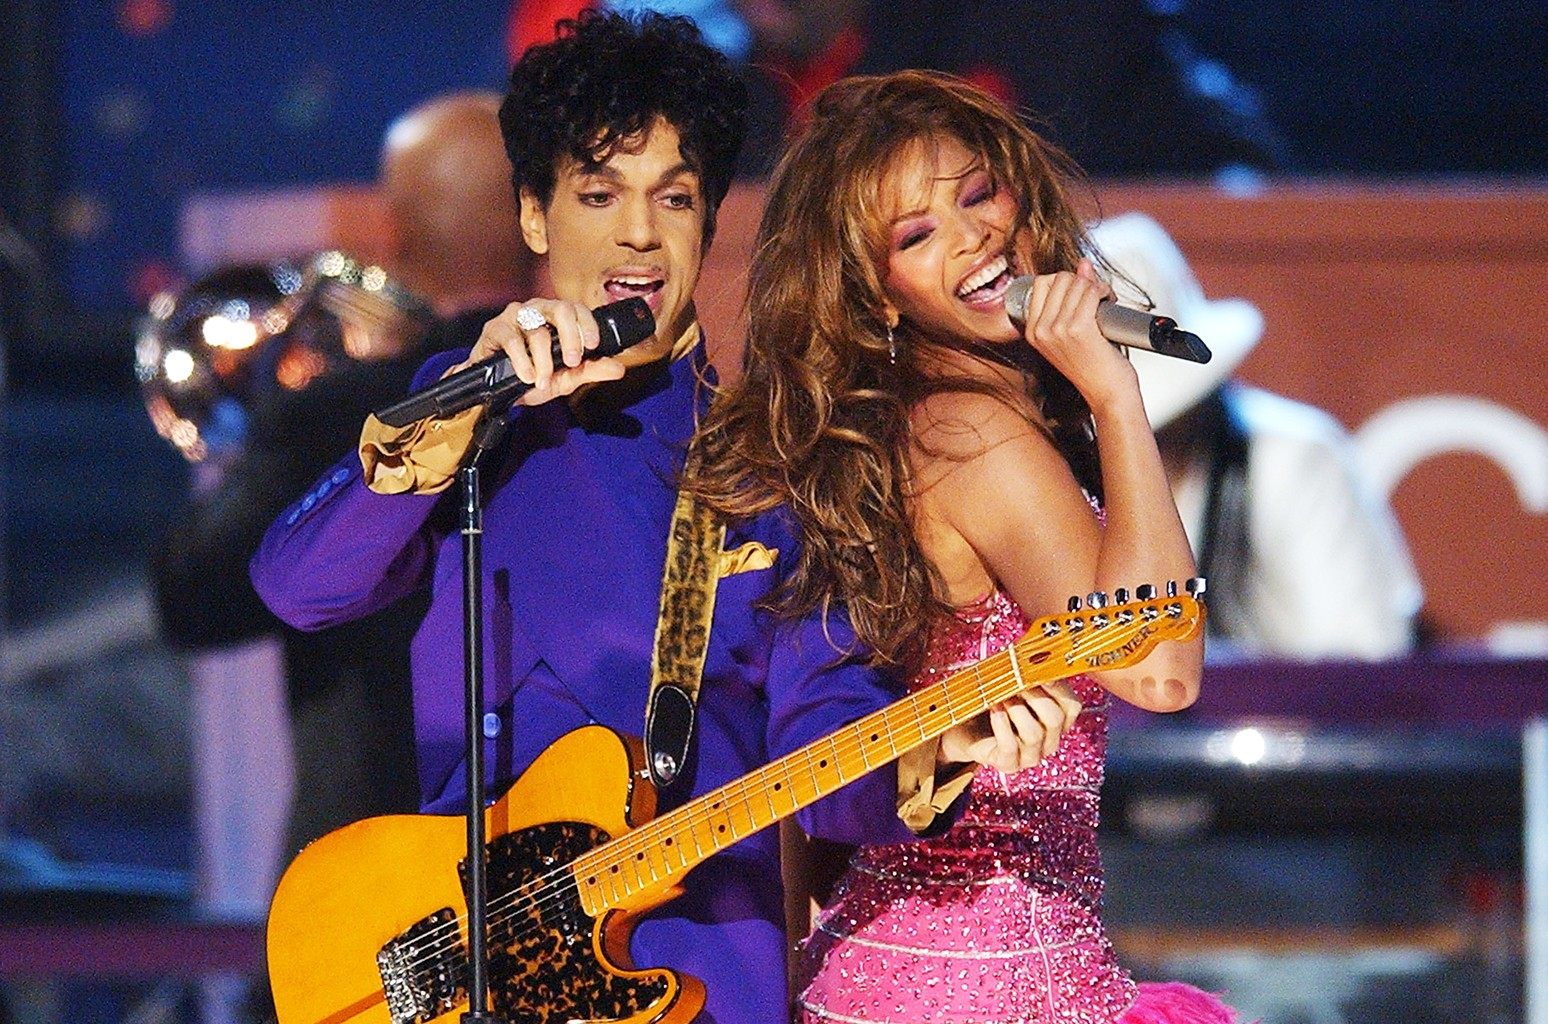 Prince and Beyonce perform at the 2004 Grammy Awards